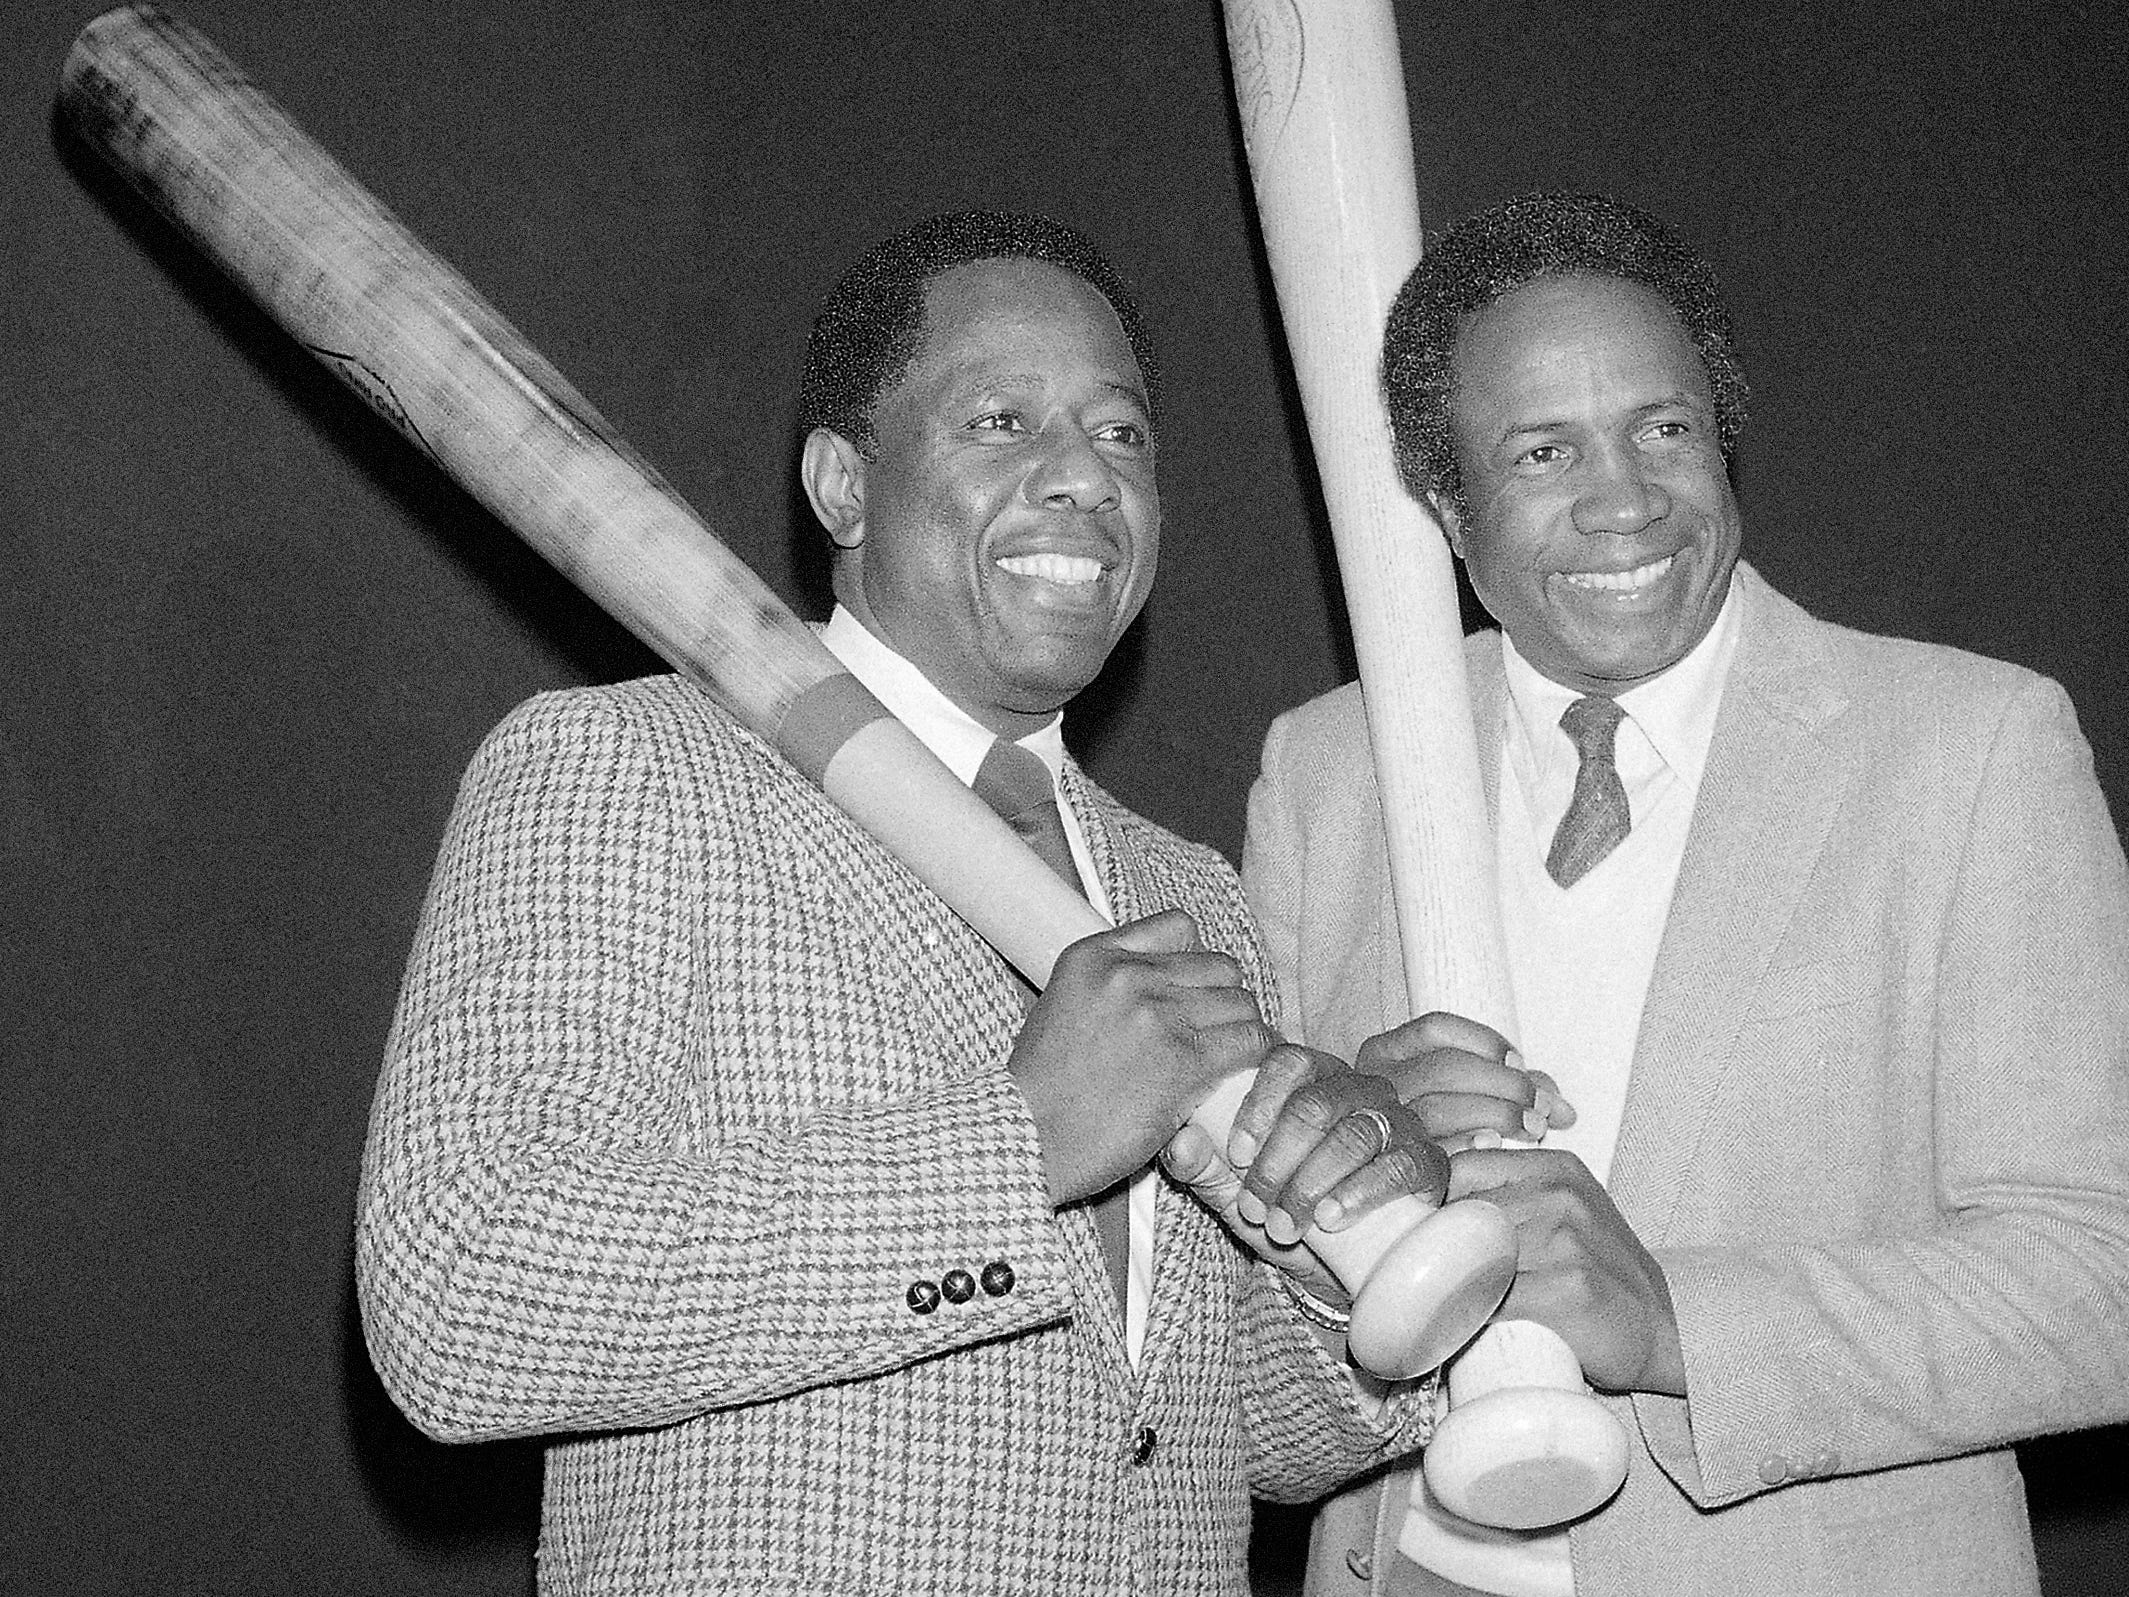 Hank Aaron, left, and Frank Robinson pose together after being voted into baseball's Hall of Fame in 1982.